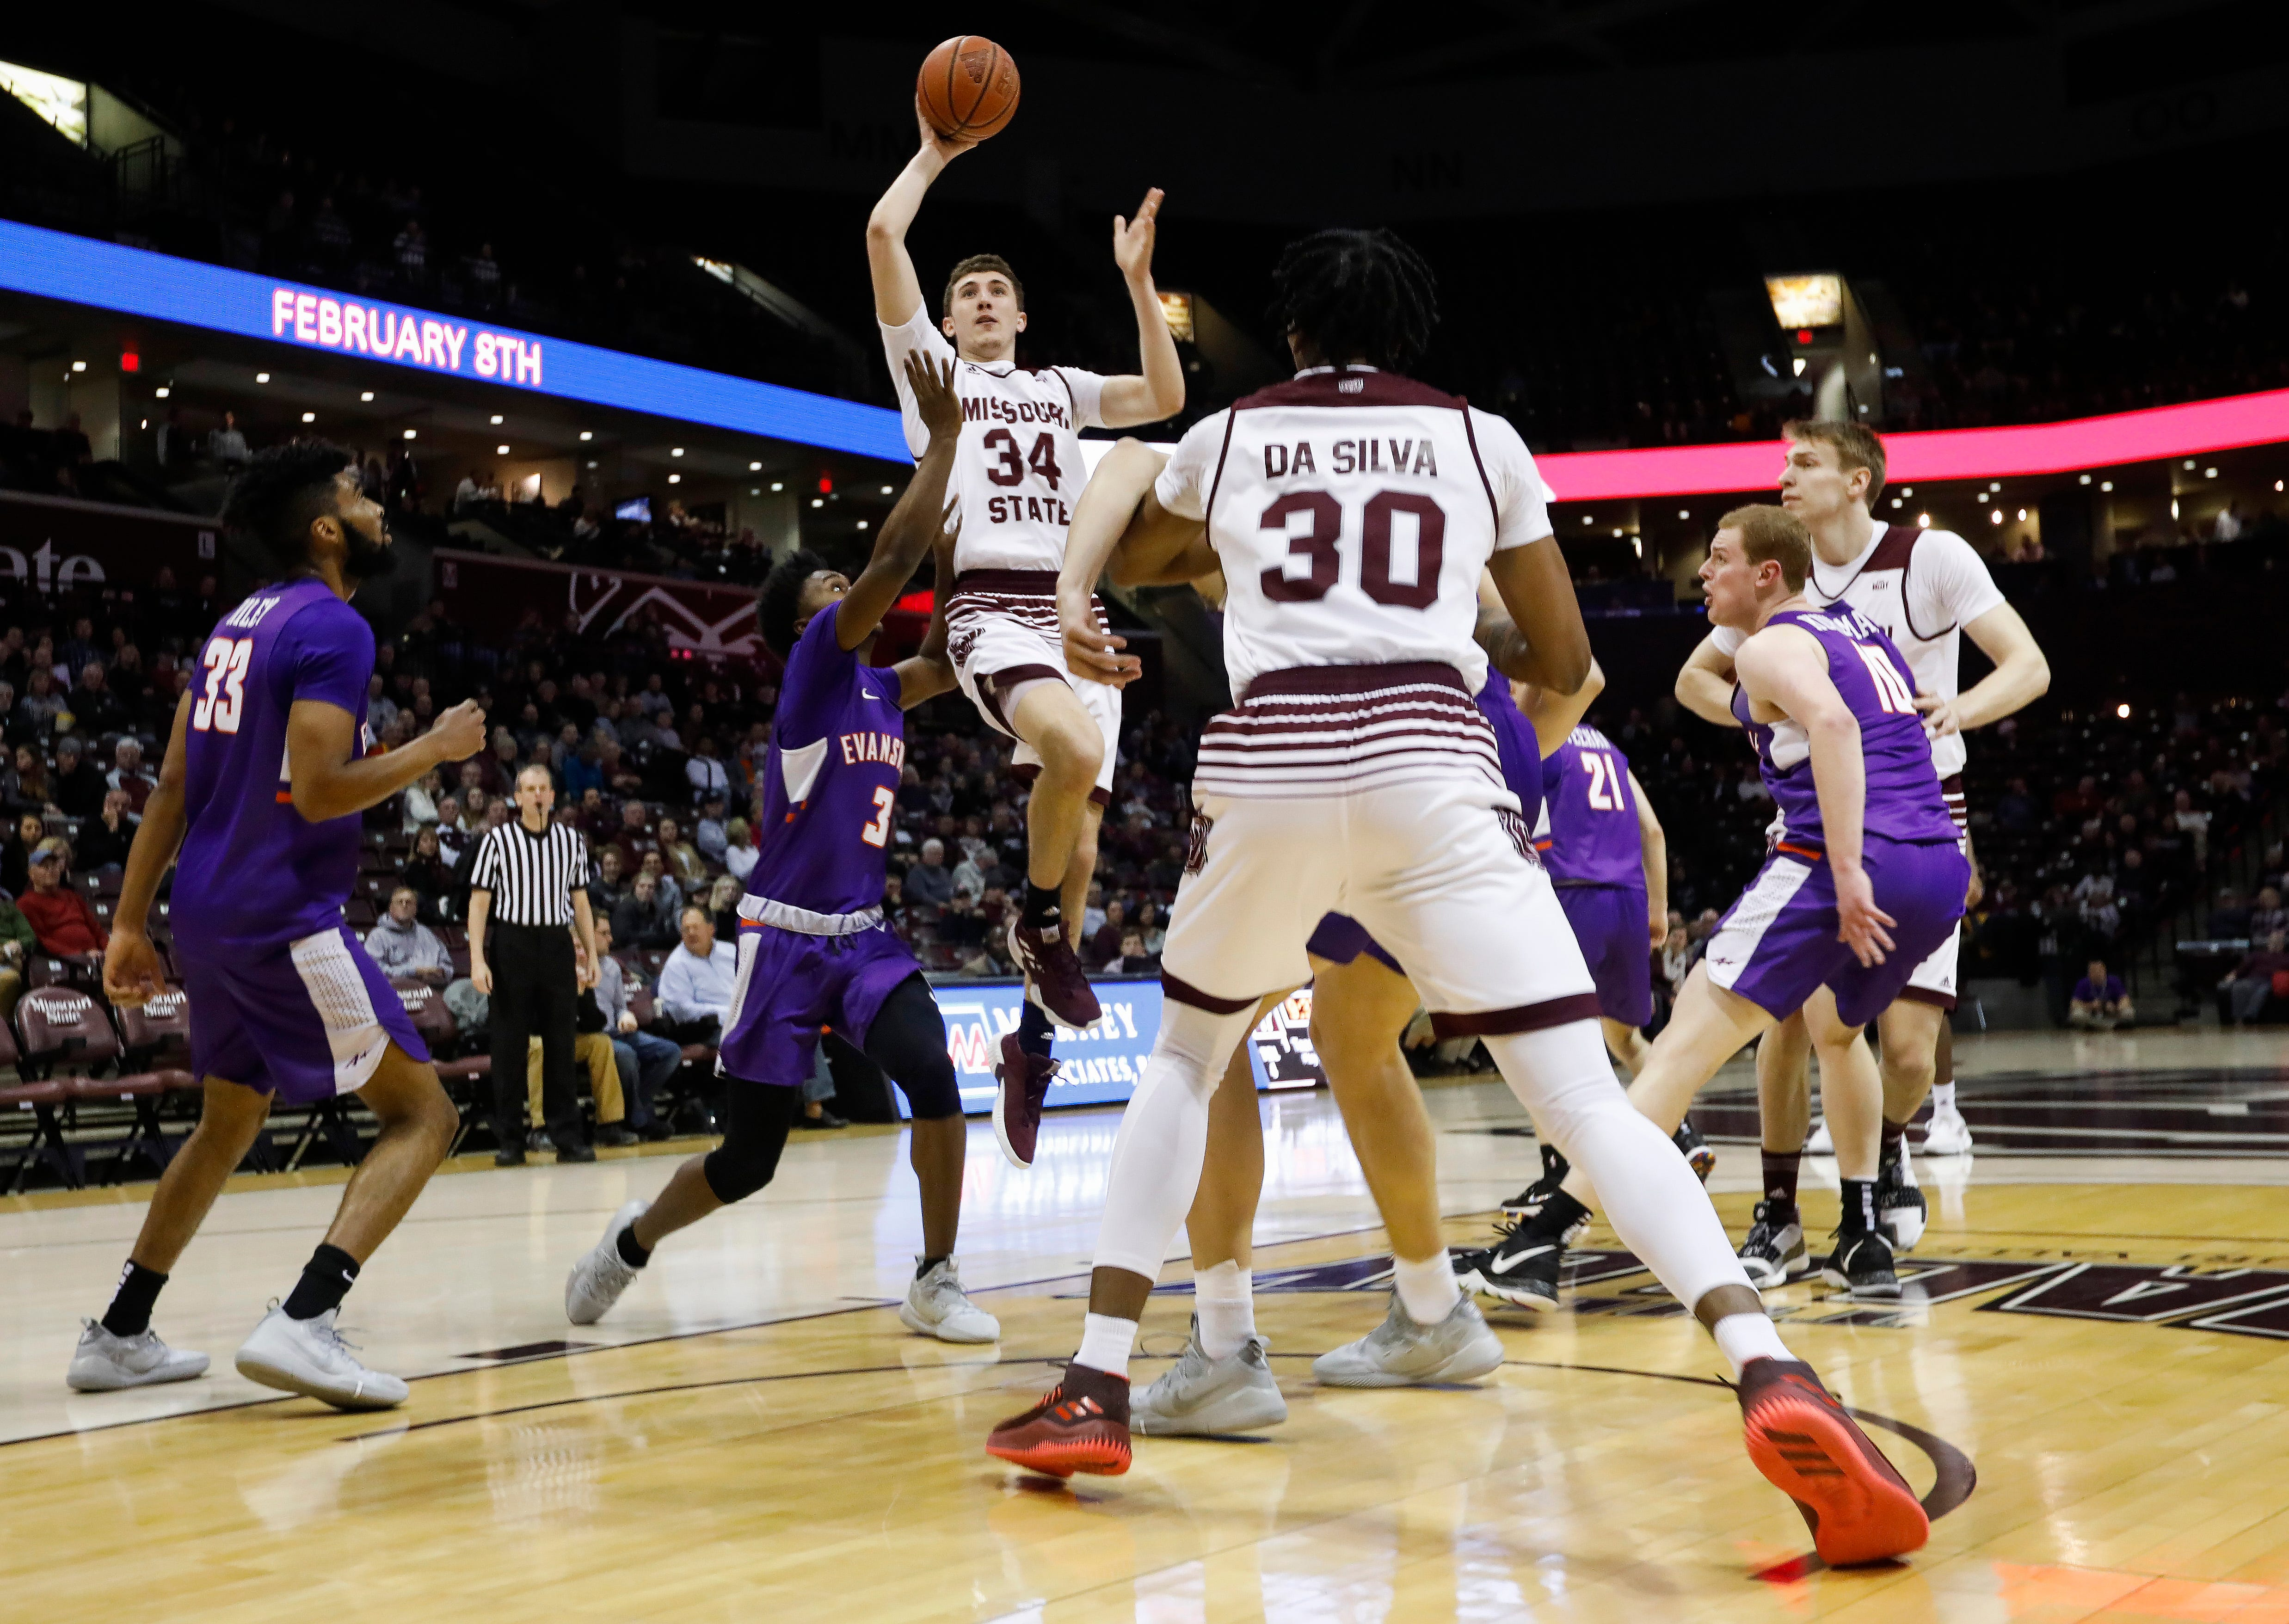 Jared Ridder (34), of Missouri State, puts up a shot during the Bears game against the Evansville Purple Aces at JQH Arena on Wednesday, Jan. 16, 2019.